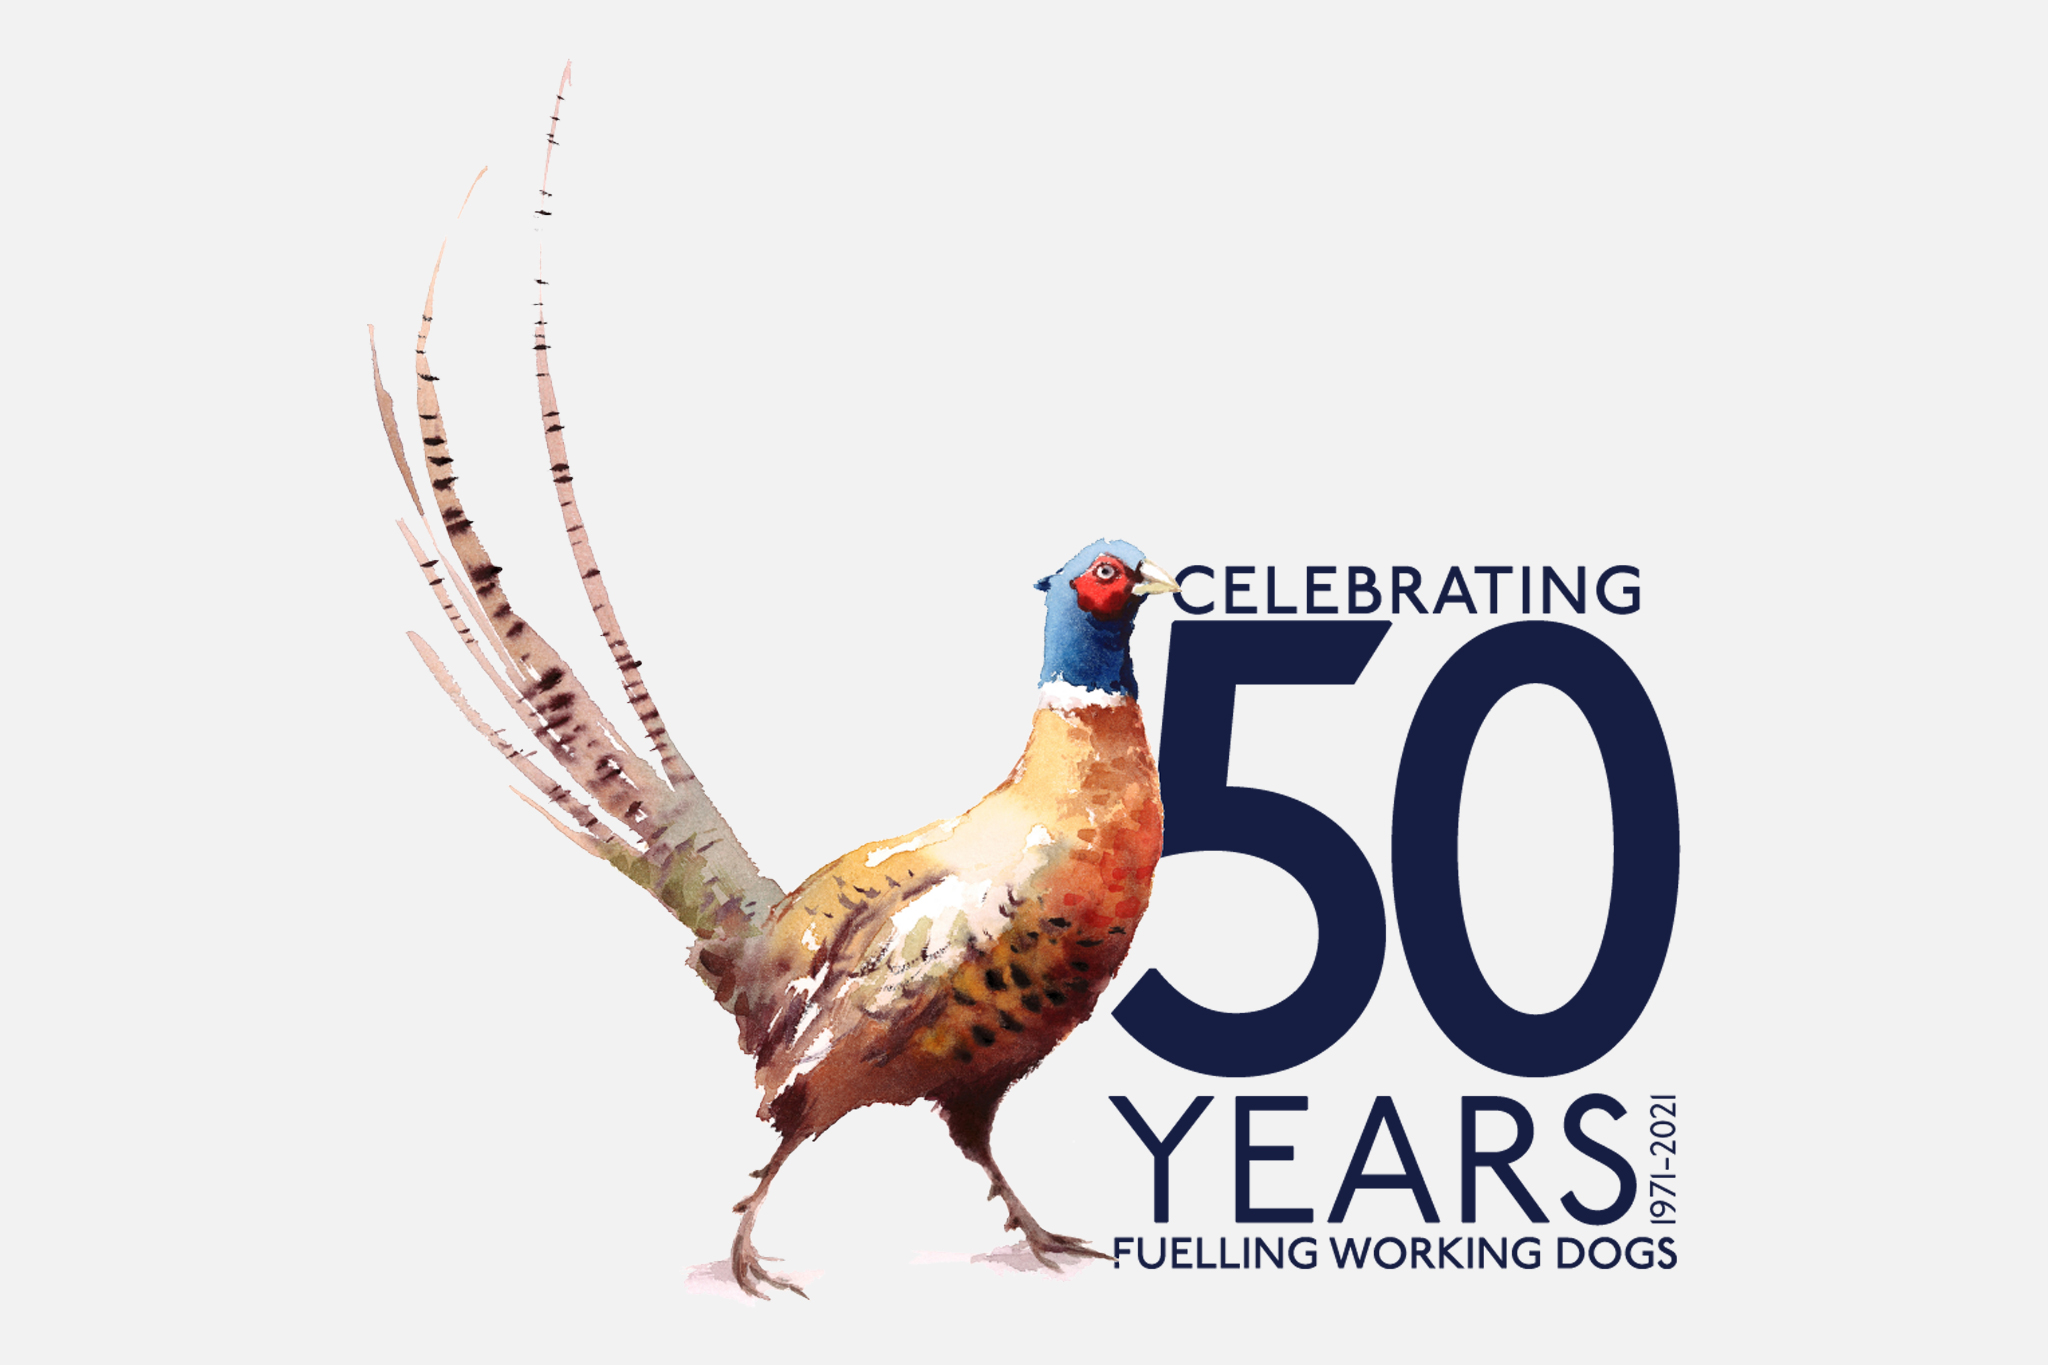 Skinner's making working dog food for 50 years